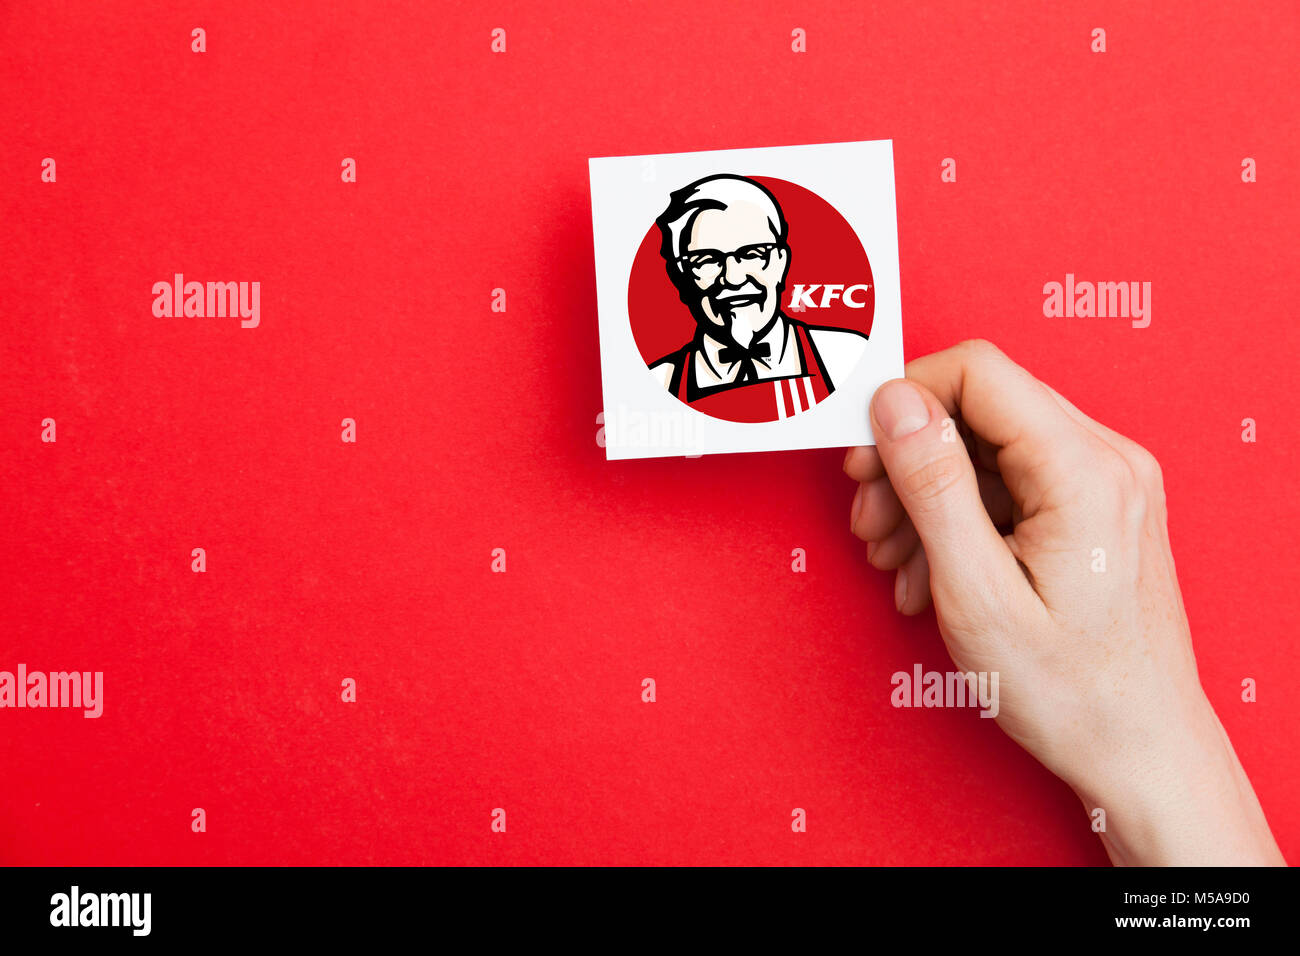 LONDON, UK - February 21st 2018: Hand holidng aKFC fast food sign. KFC is an american fast food company that specializes - Stock Image